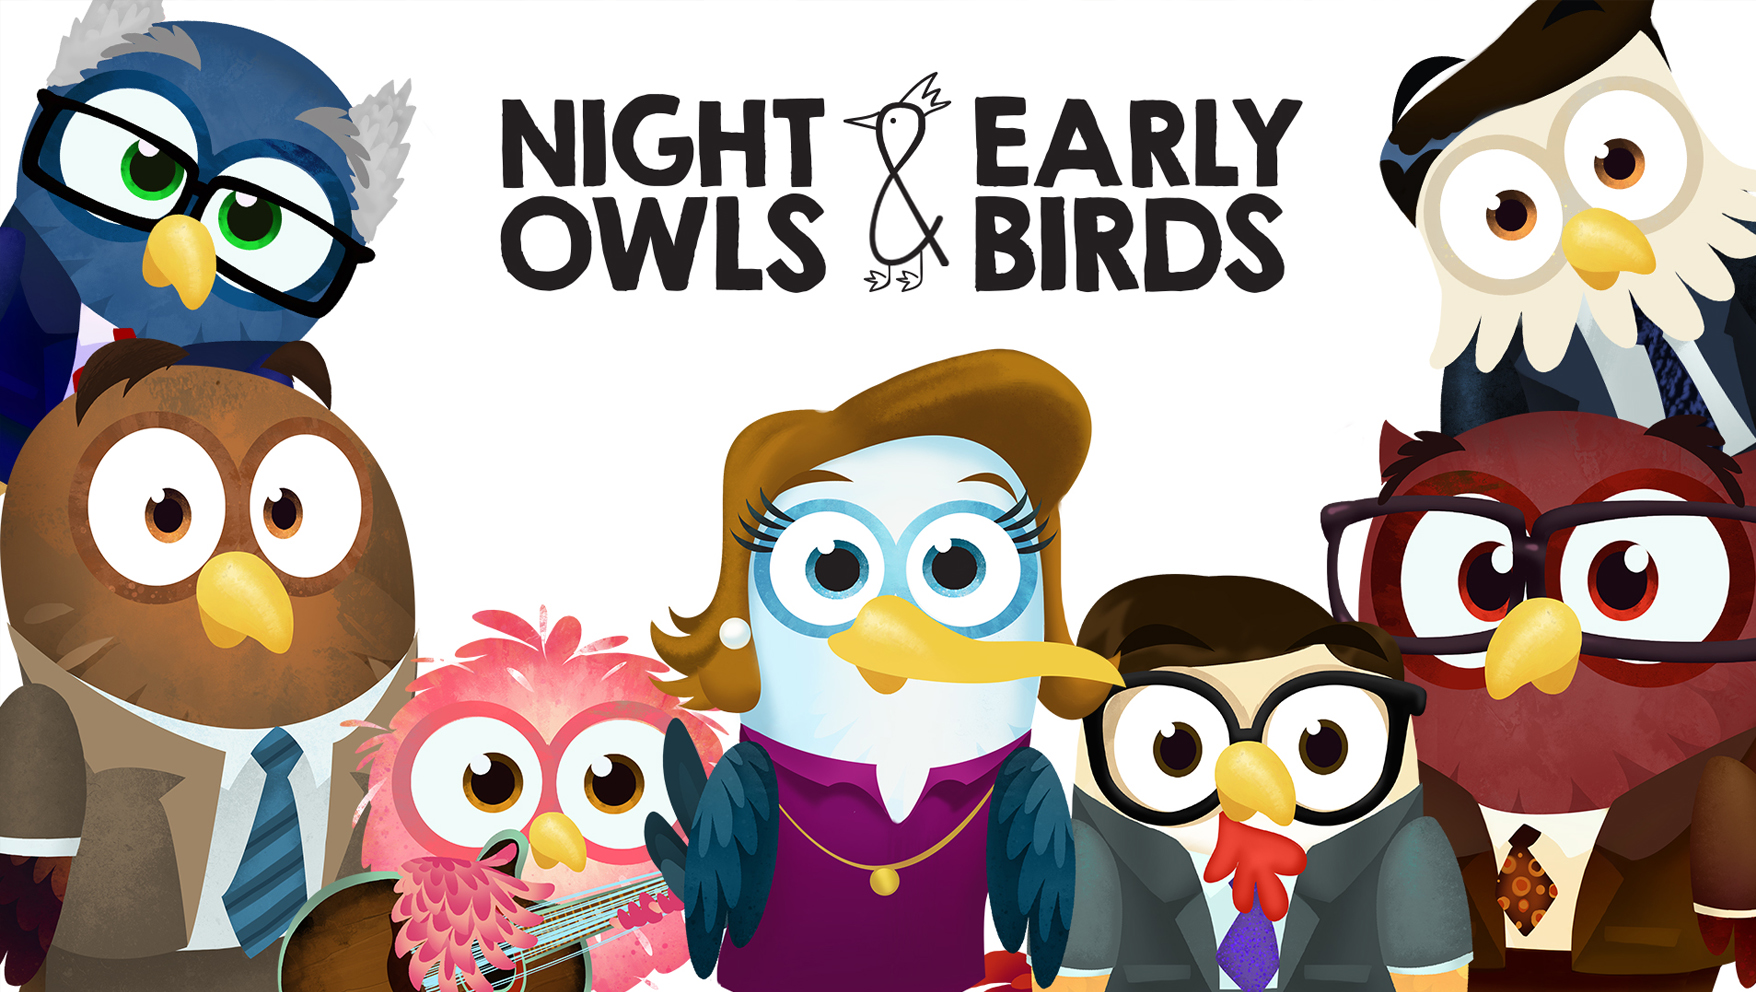 Introducing Night Owls and Early Birds from the Creators of Owlegories